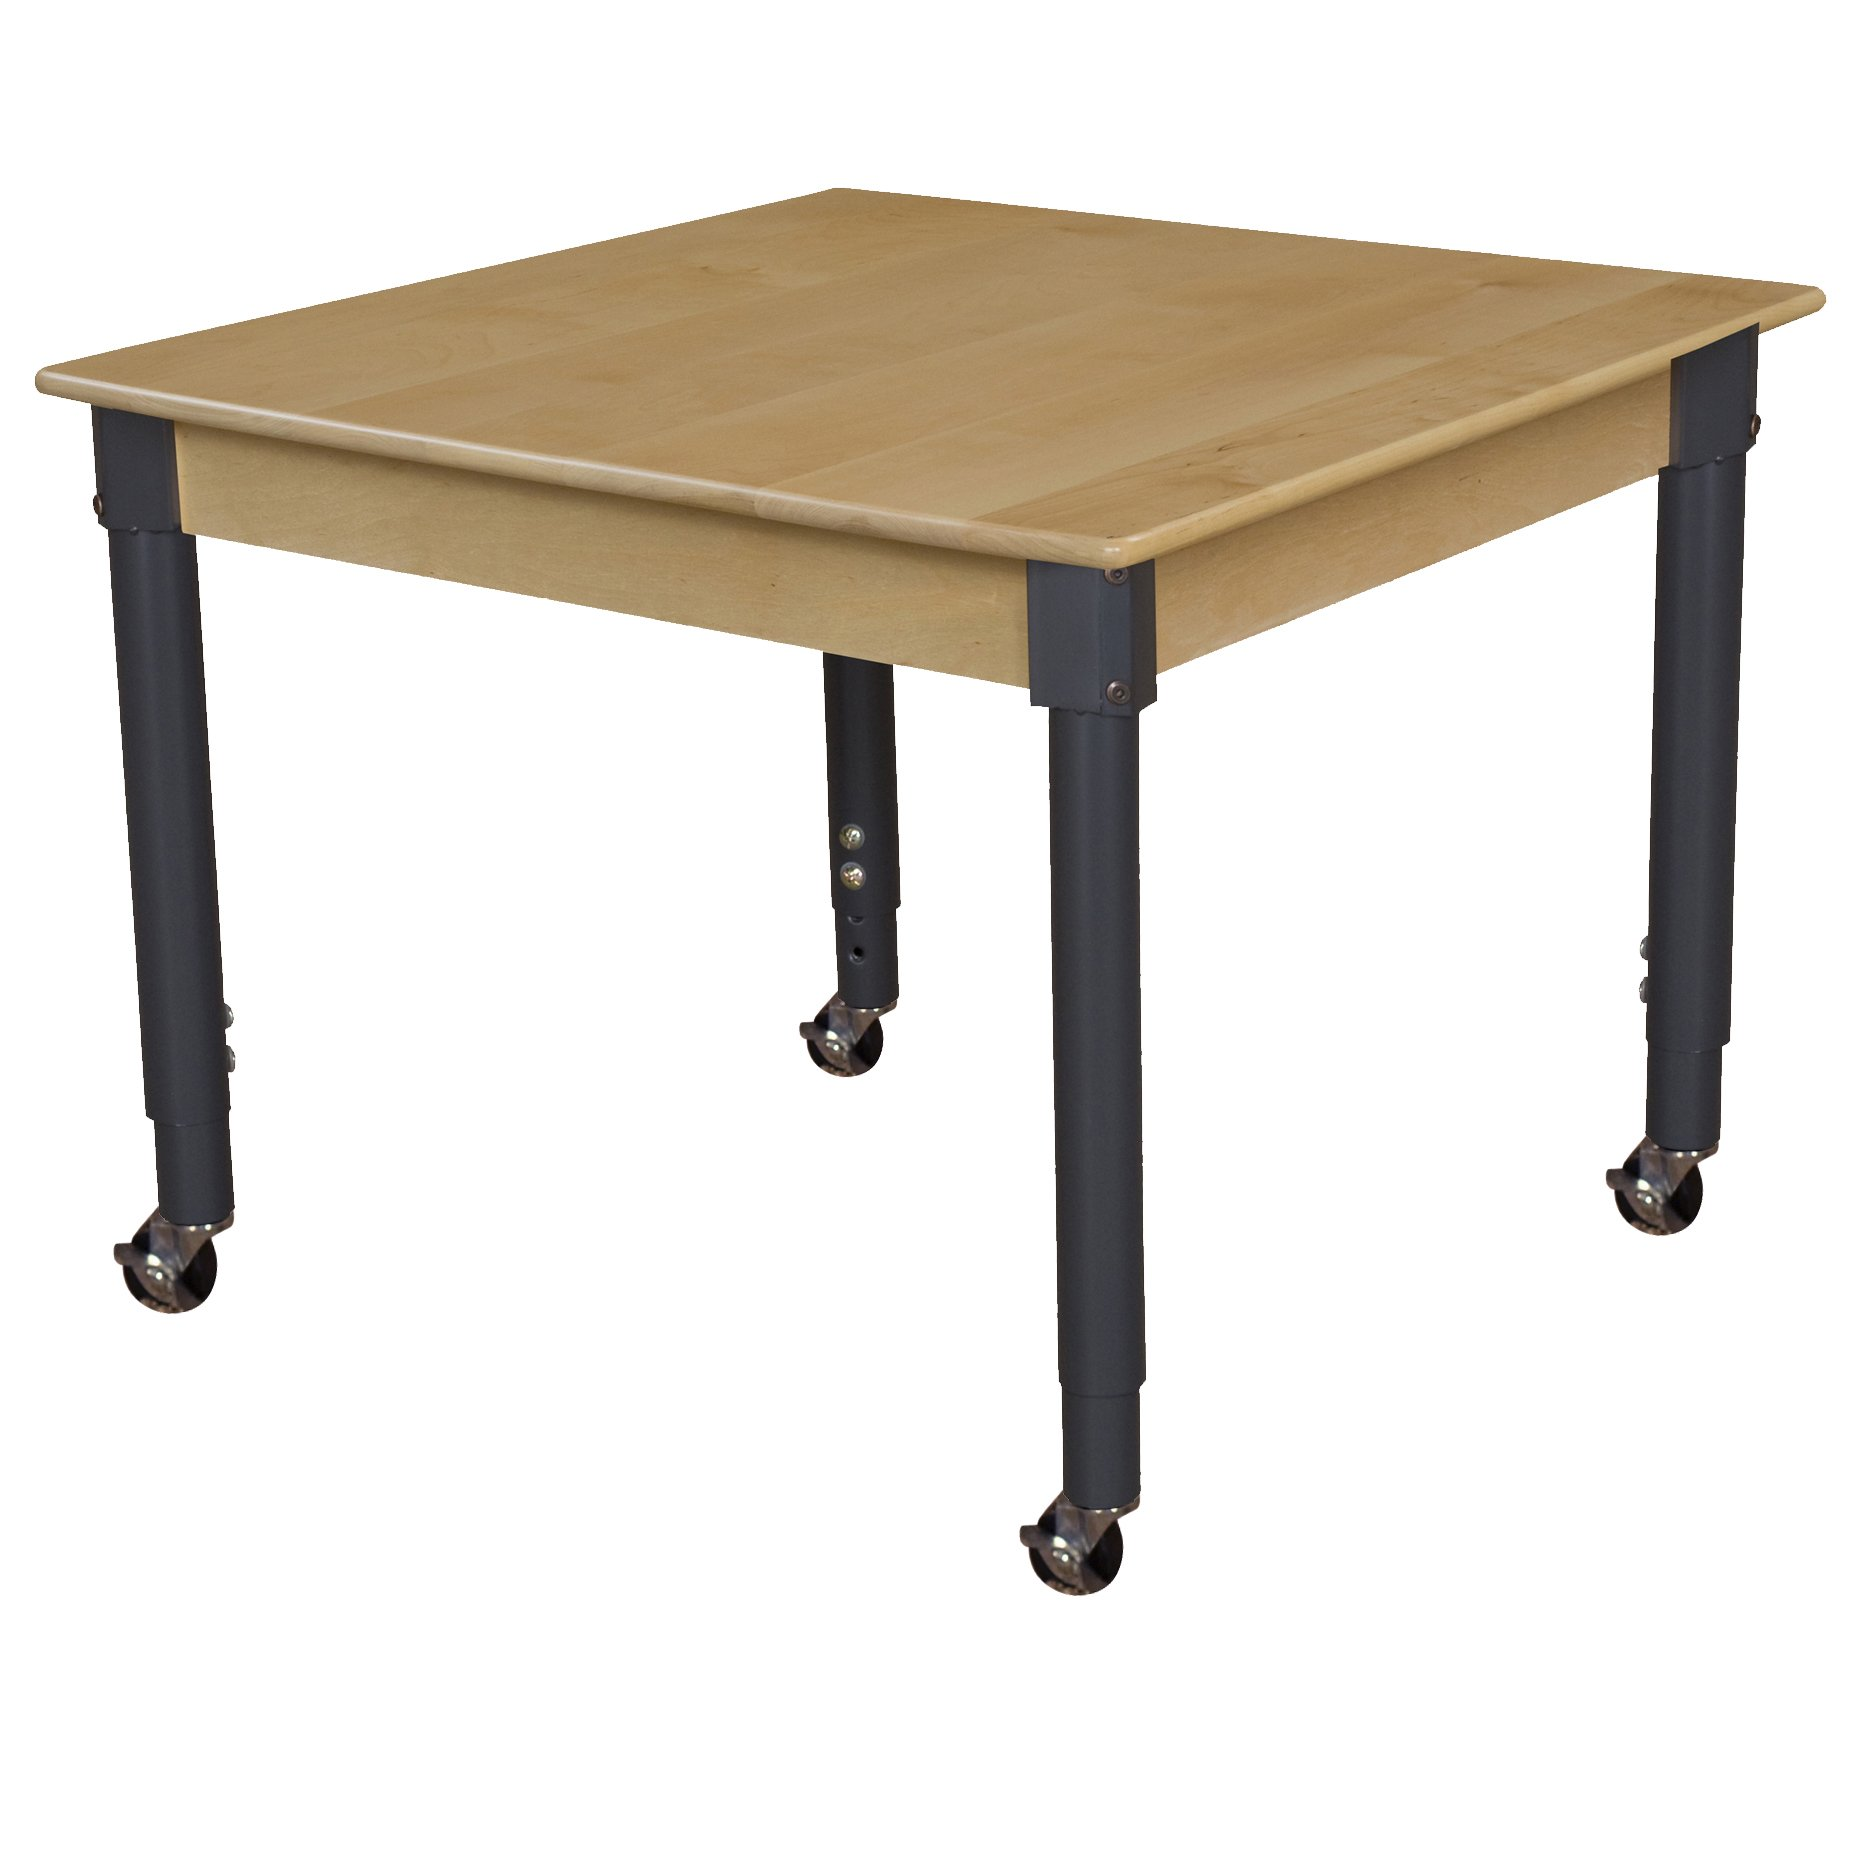 Wood Designs WD837A1829C6 Mobile 36'' Square Hardwood Table with 20''-31'' Adjustable Legs